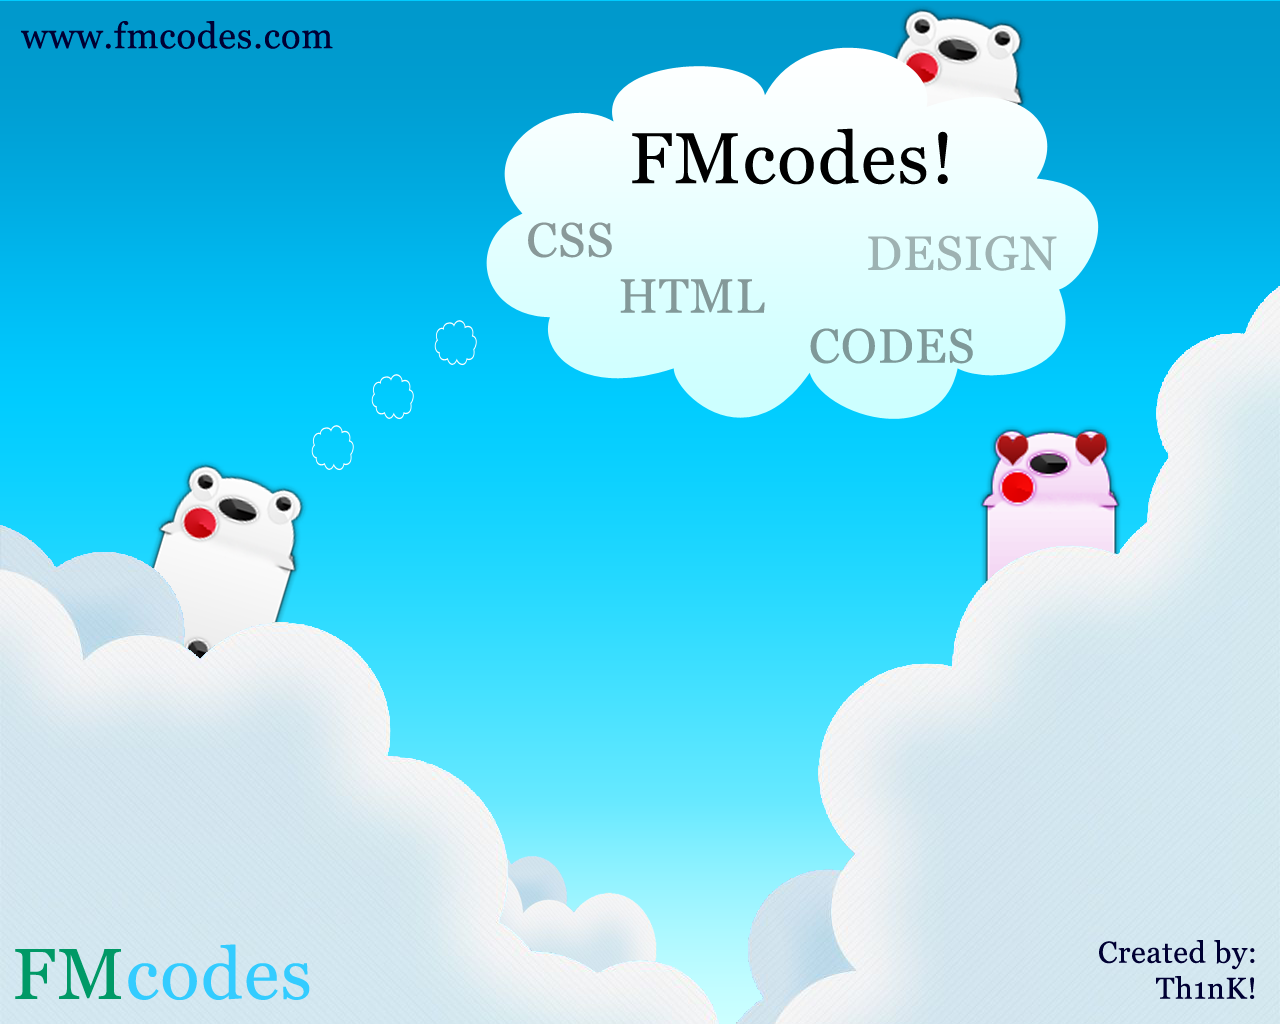 FMcodes wallpaper: The winners 8f3da4dcaf3f43b6